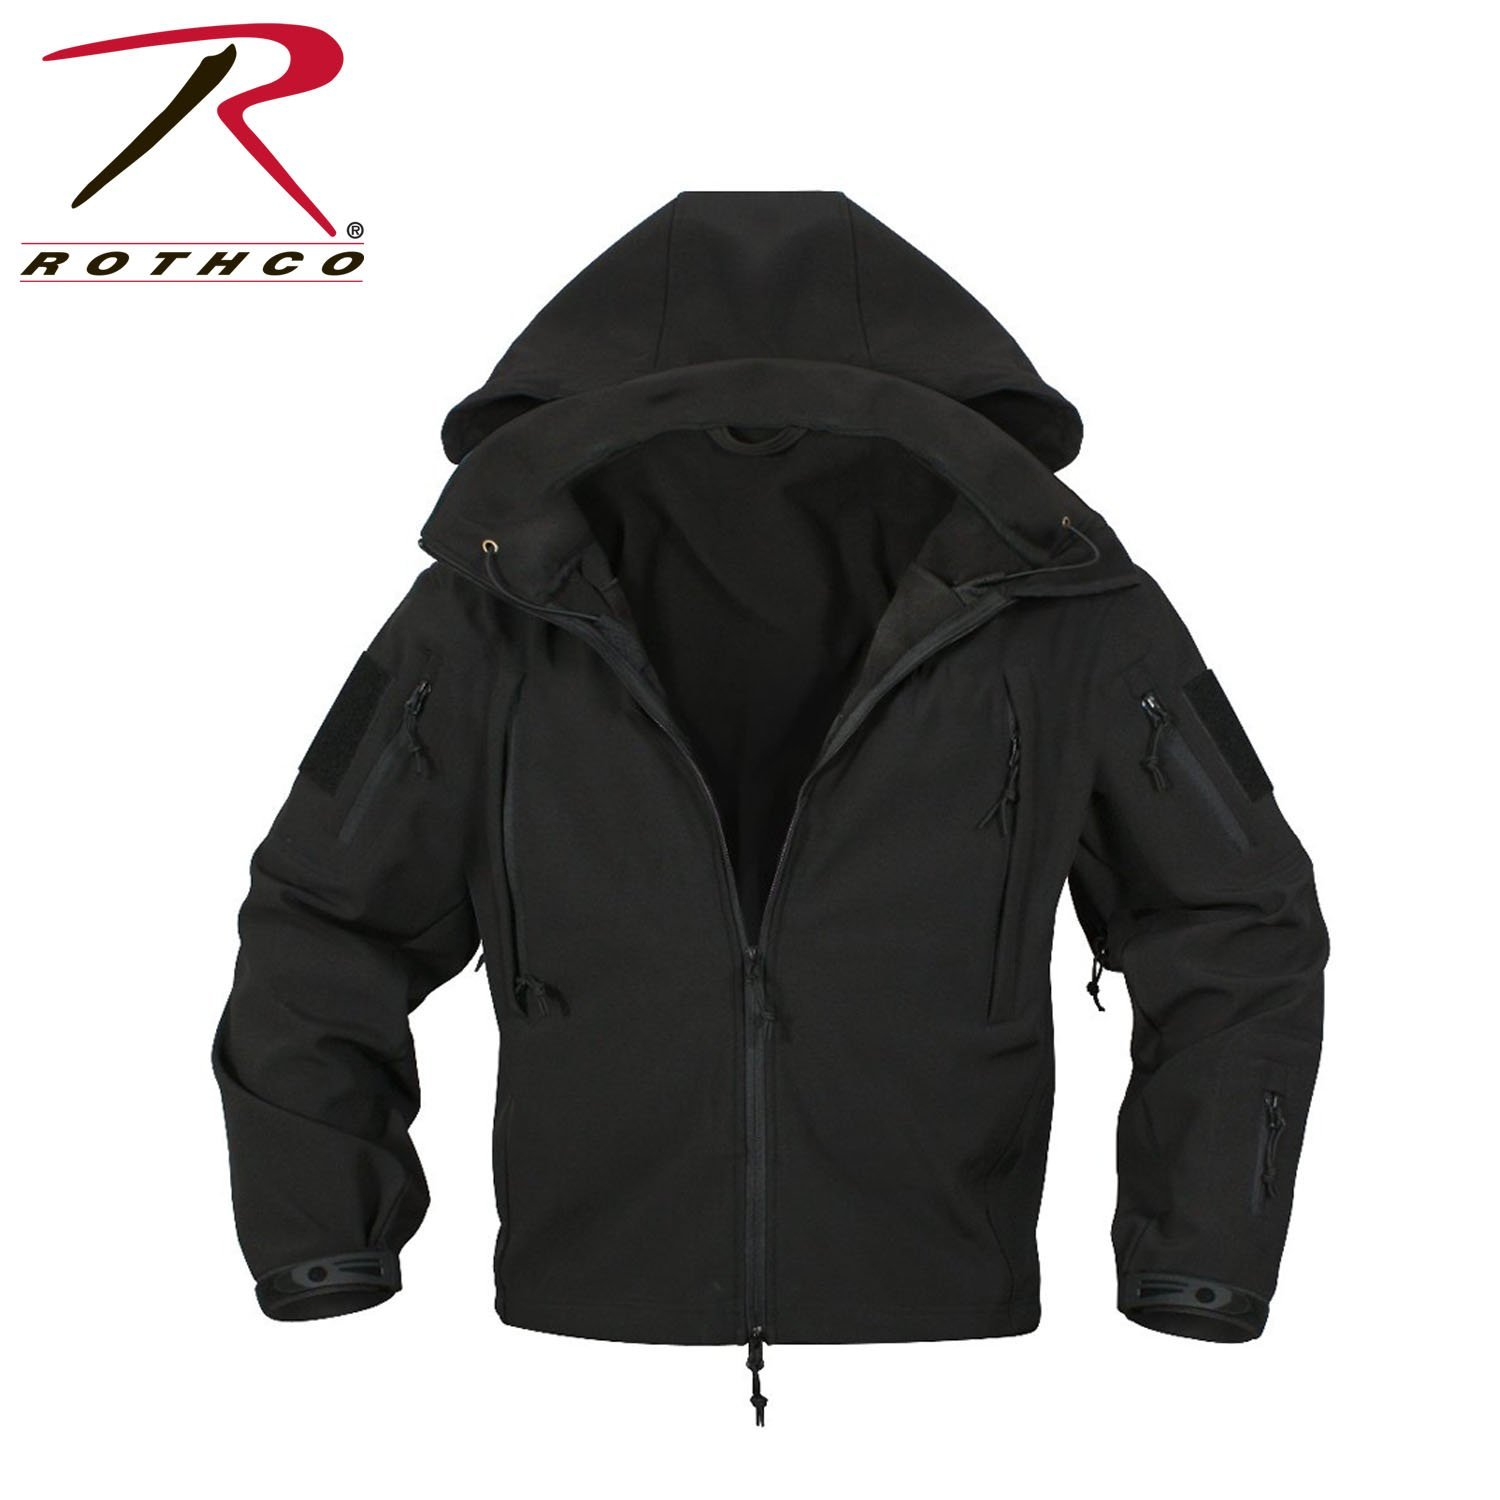 Special Ops Tactical Soft Shell Jacket, Black 5XL